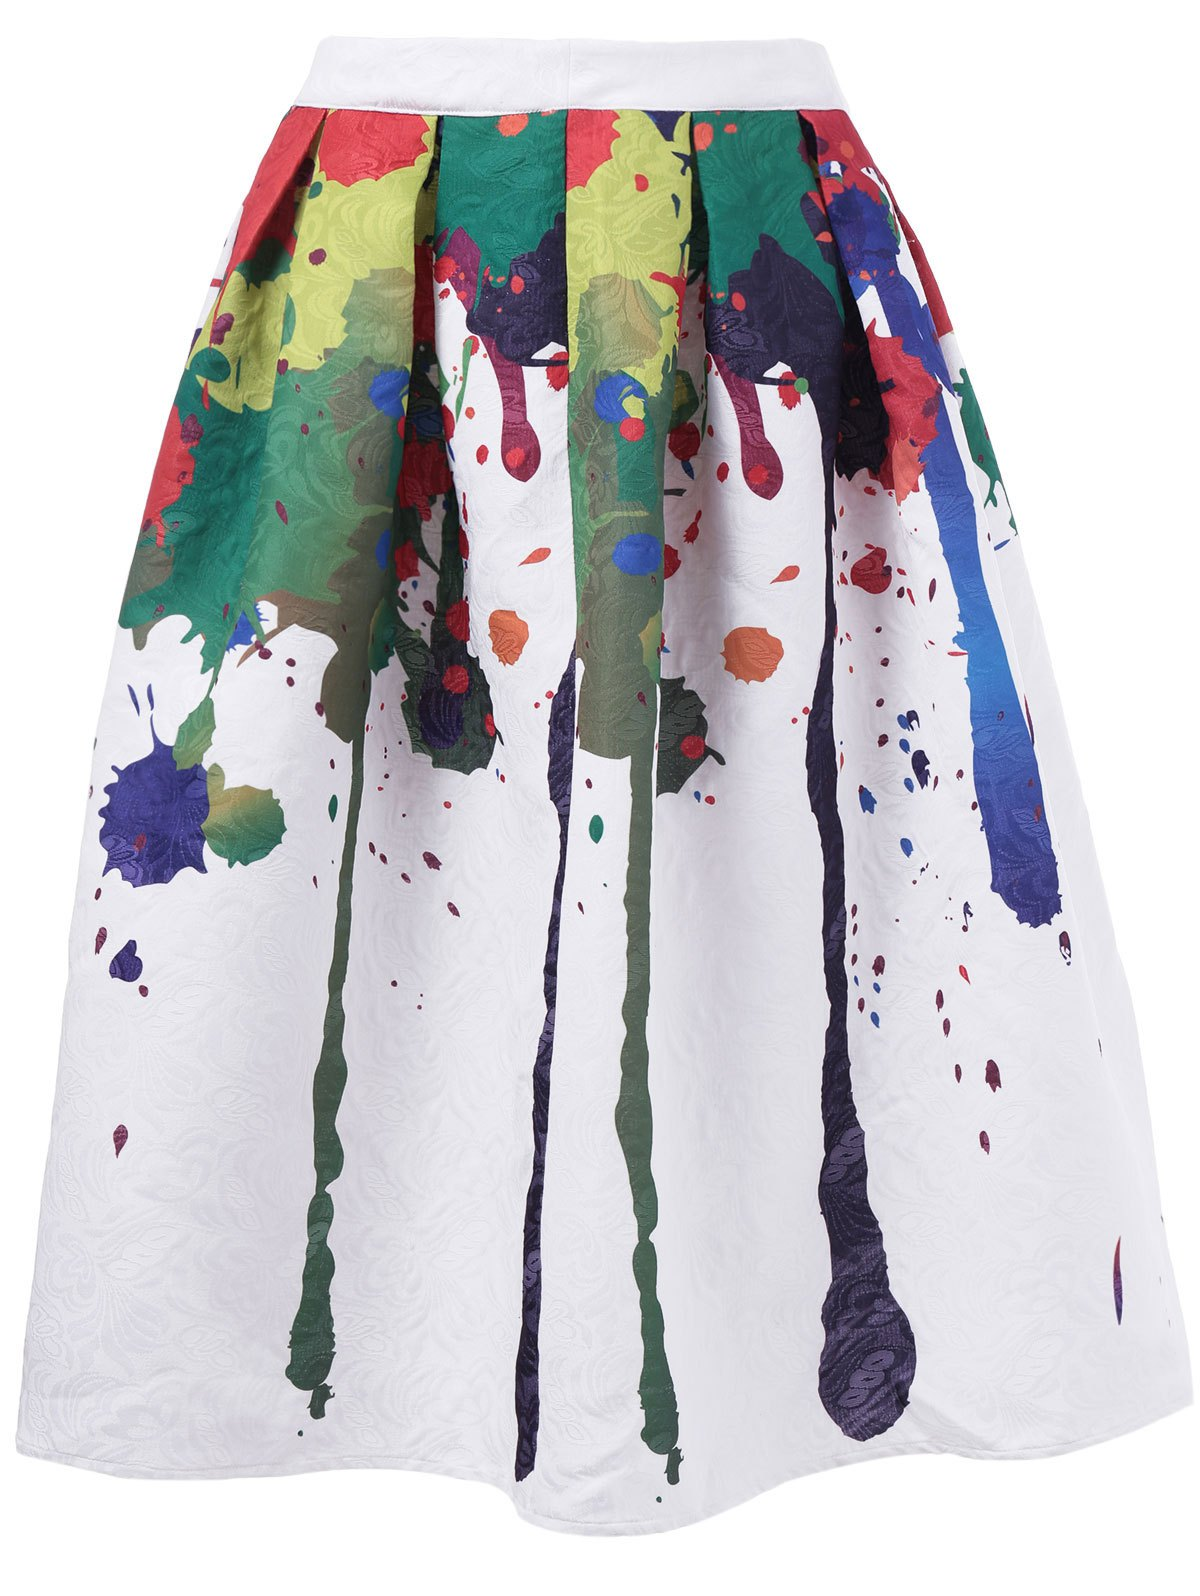 Fashionable Doodle Printing High-Waisted Skirt For Woman - WHITE XL